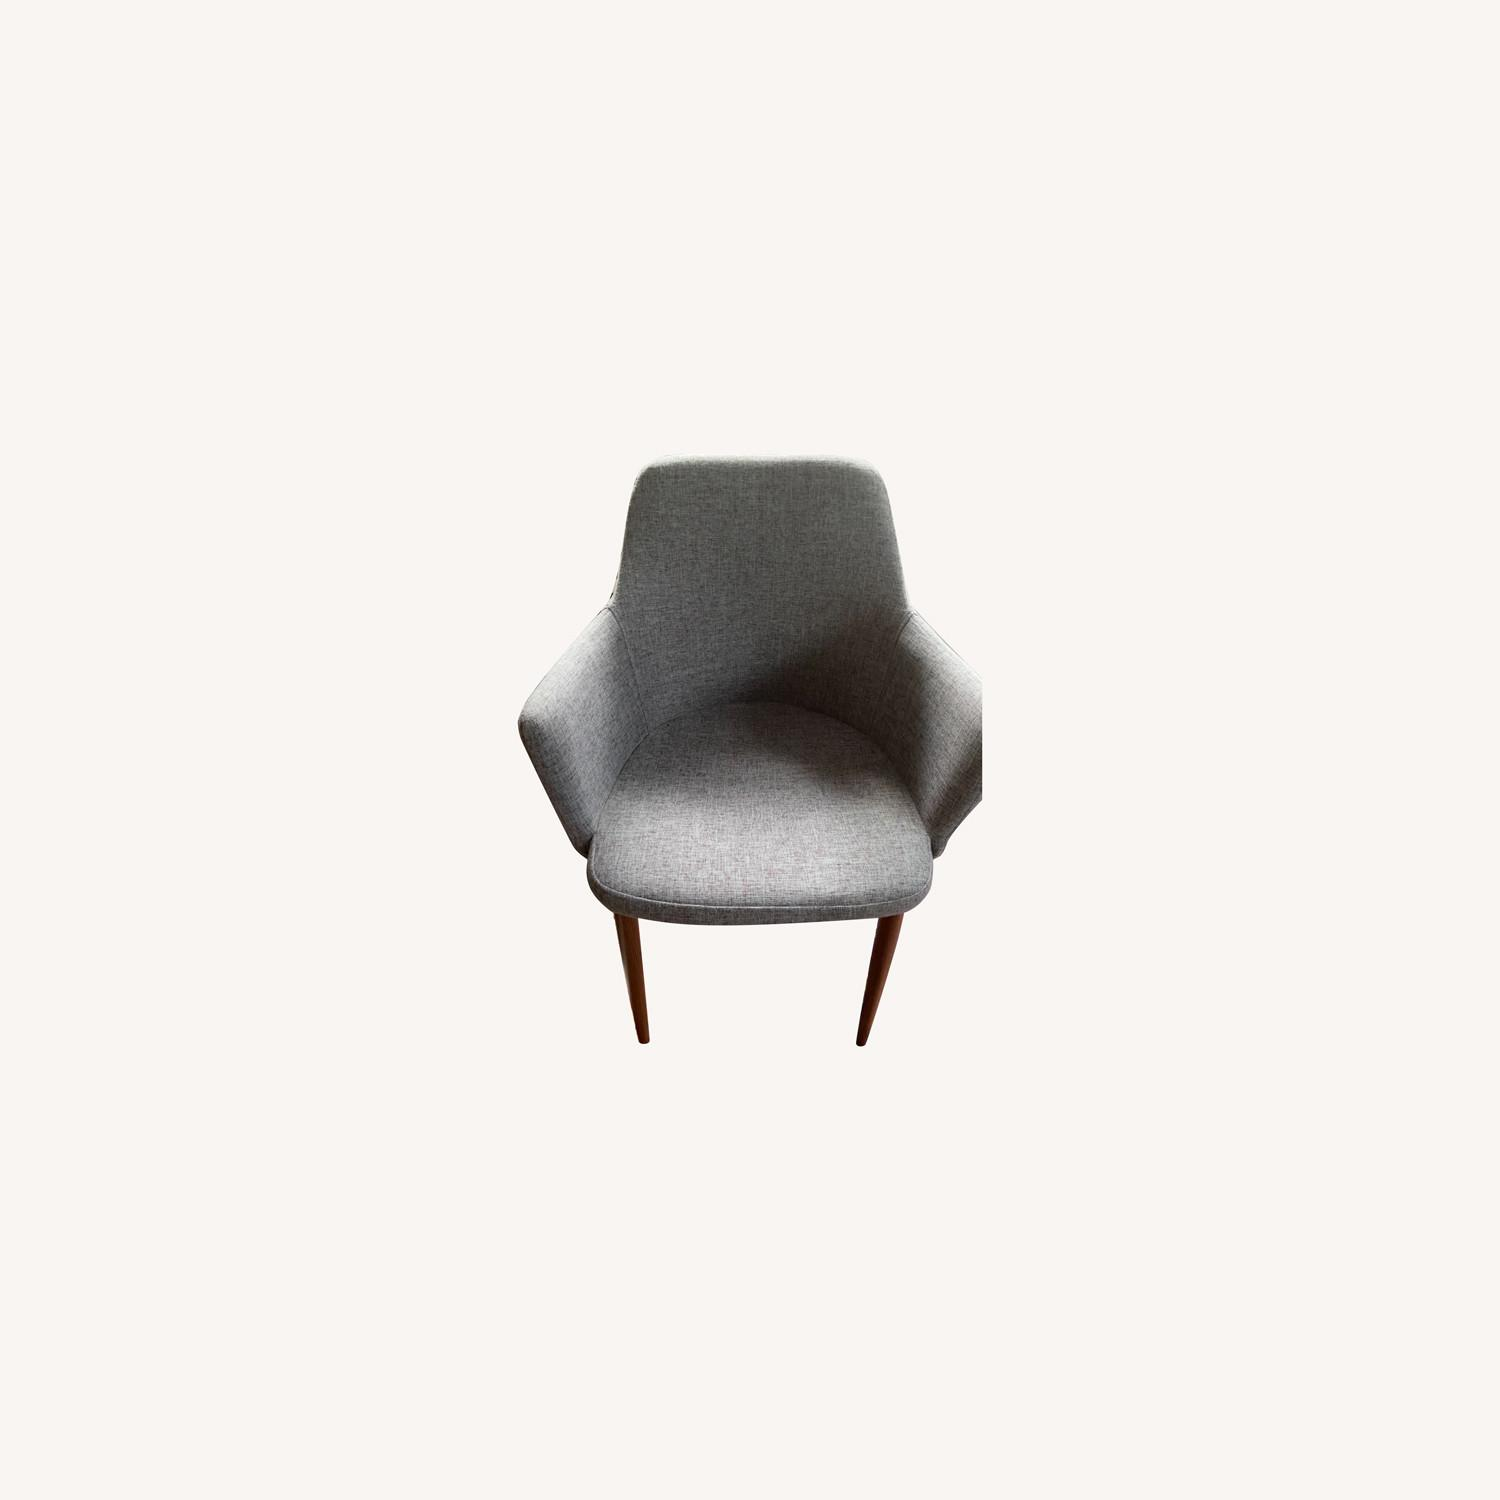 Wayfair 2 Accent/Dining Grey Chair - image-0